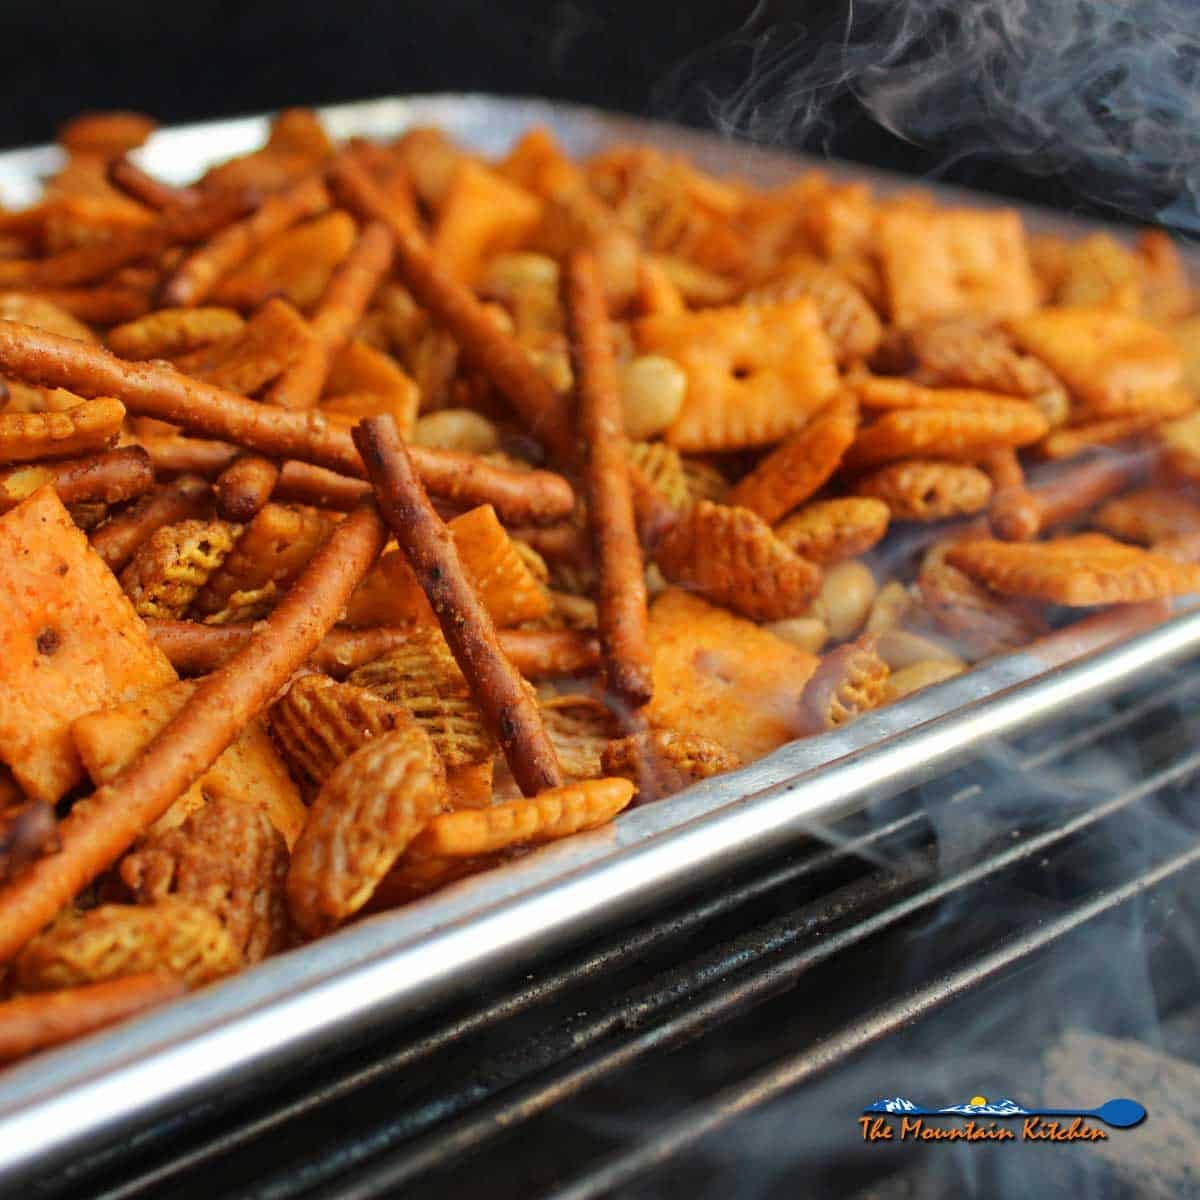 Spivey's Spicy Smoked Snack Mix